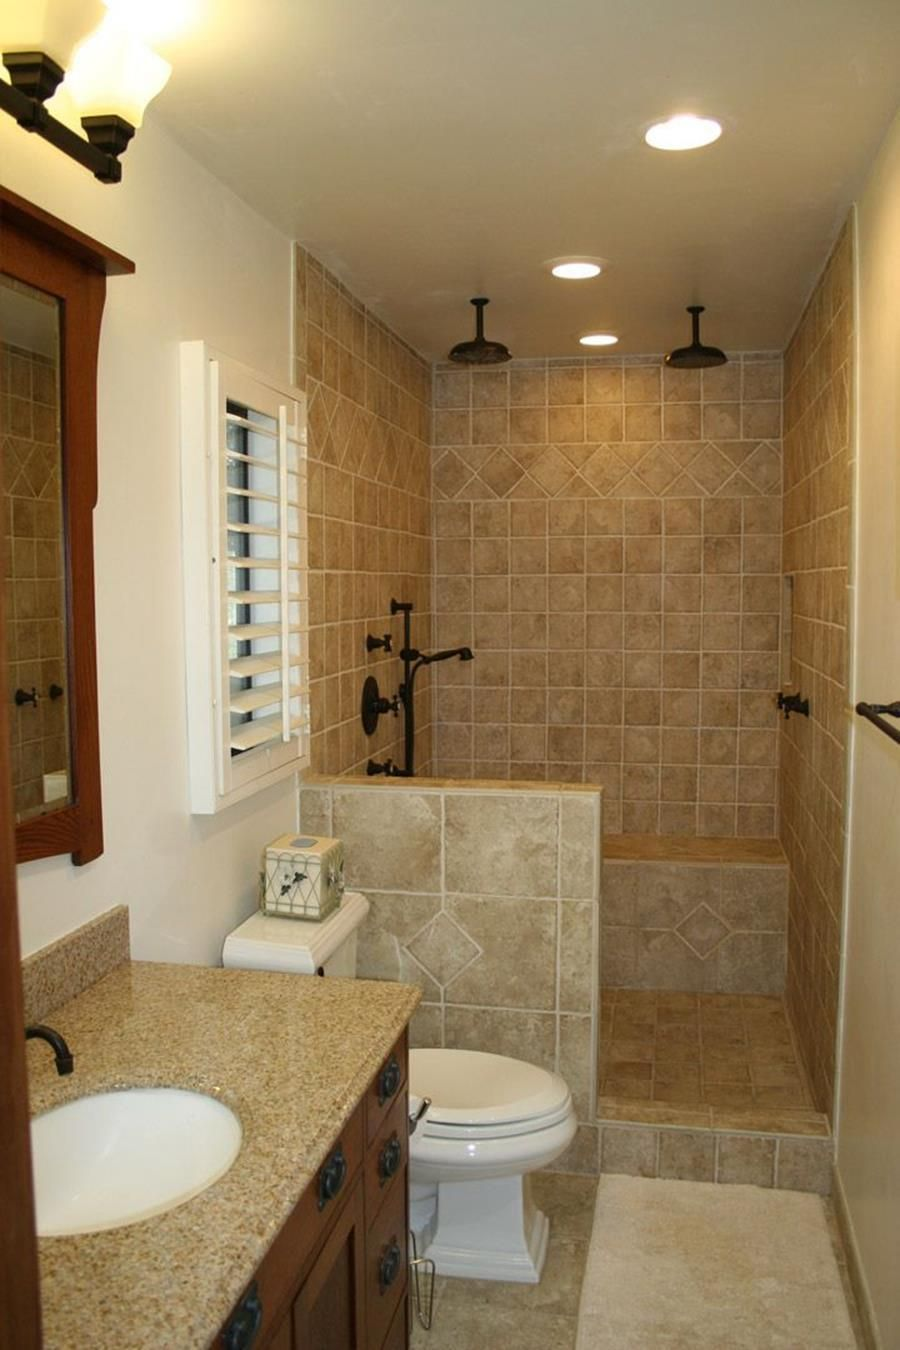 38 Perfect Spa Bathroom Remodel For Small Space Small Bathroom Small Space Bathroom Small Master Bathroom